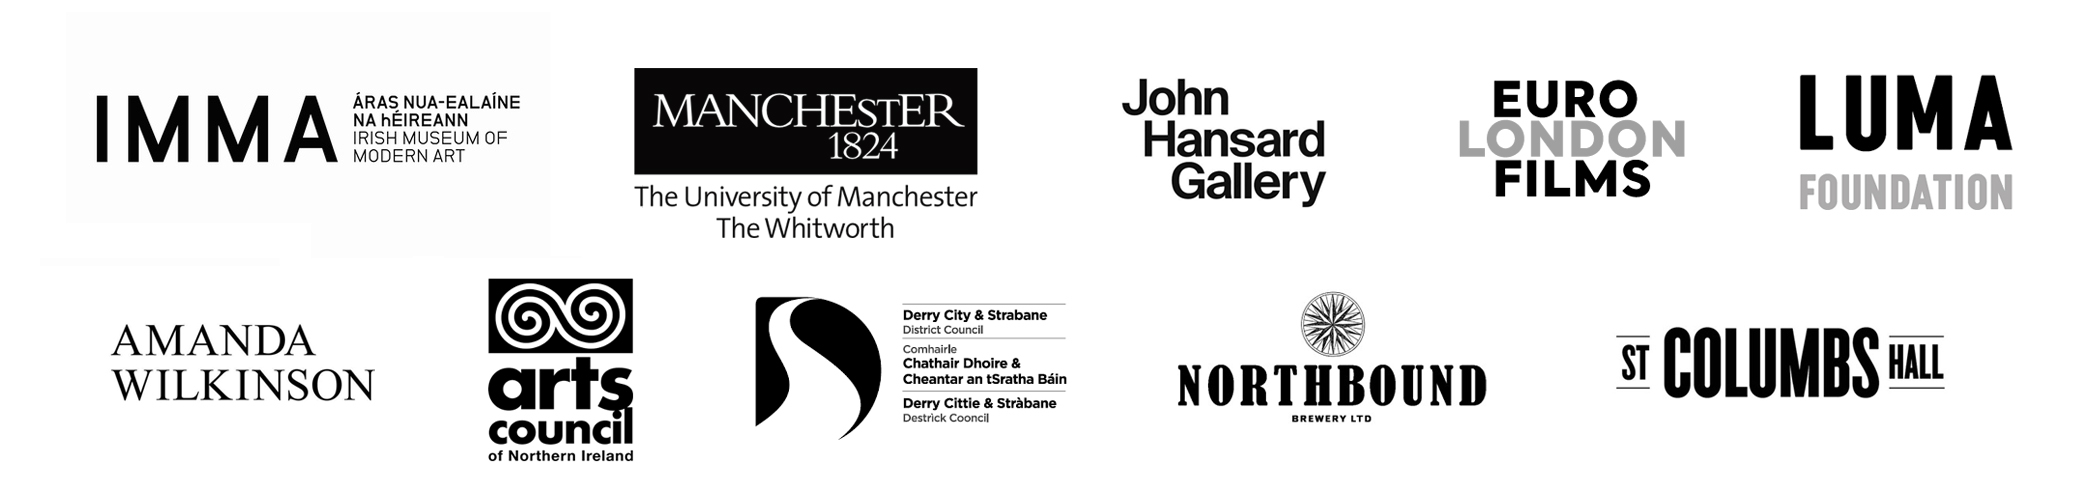 Funders and partners for Derek Jarman's The Last of England exhibition held at Void Gallery, Derry, in 2019/20